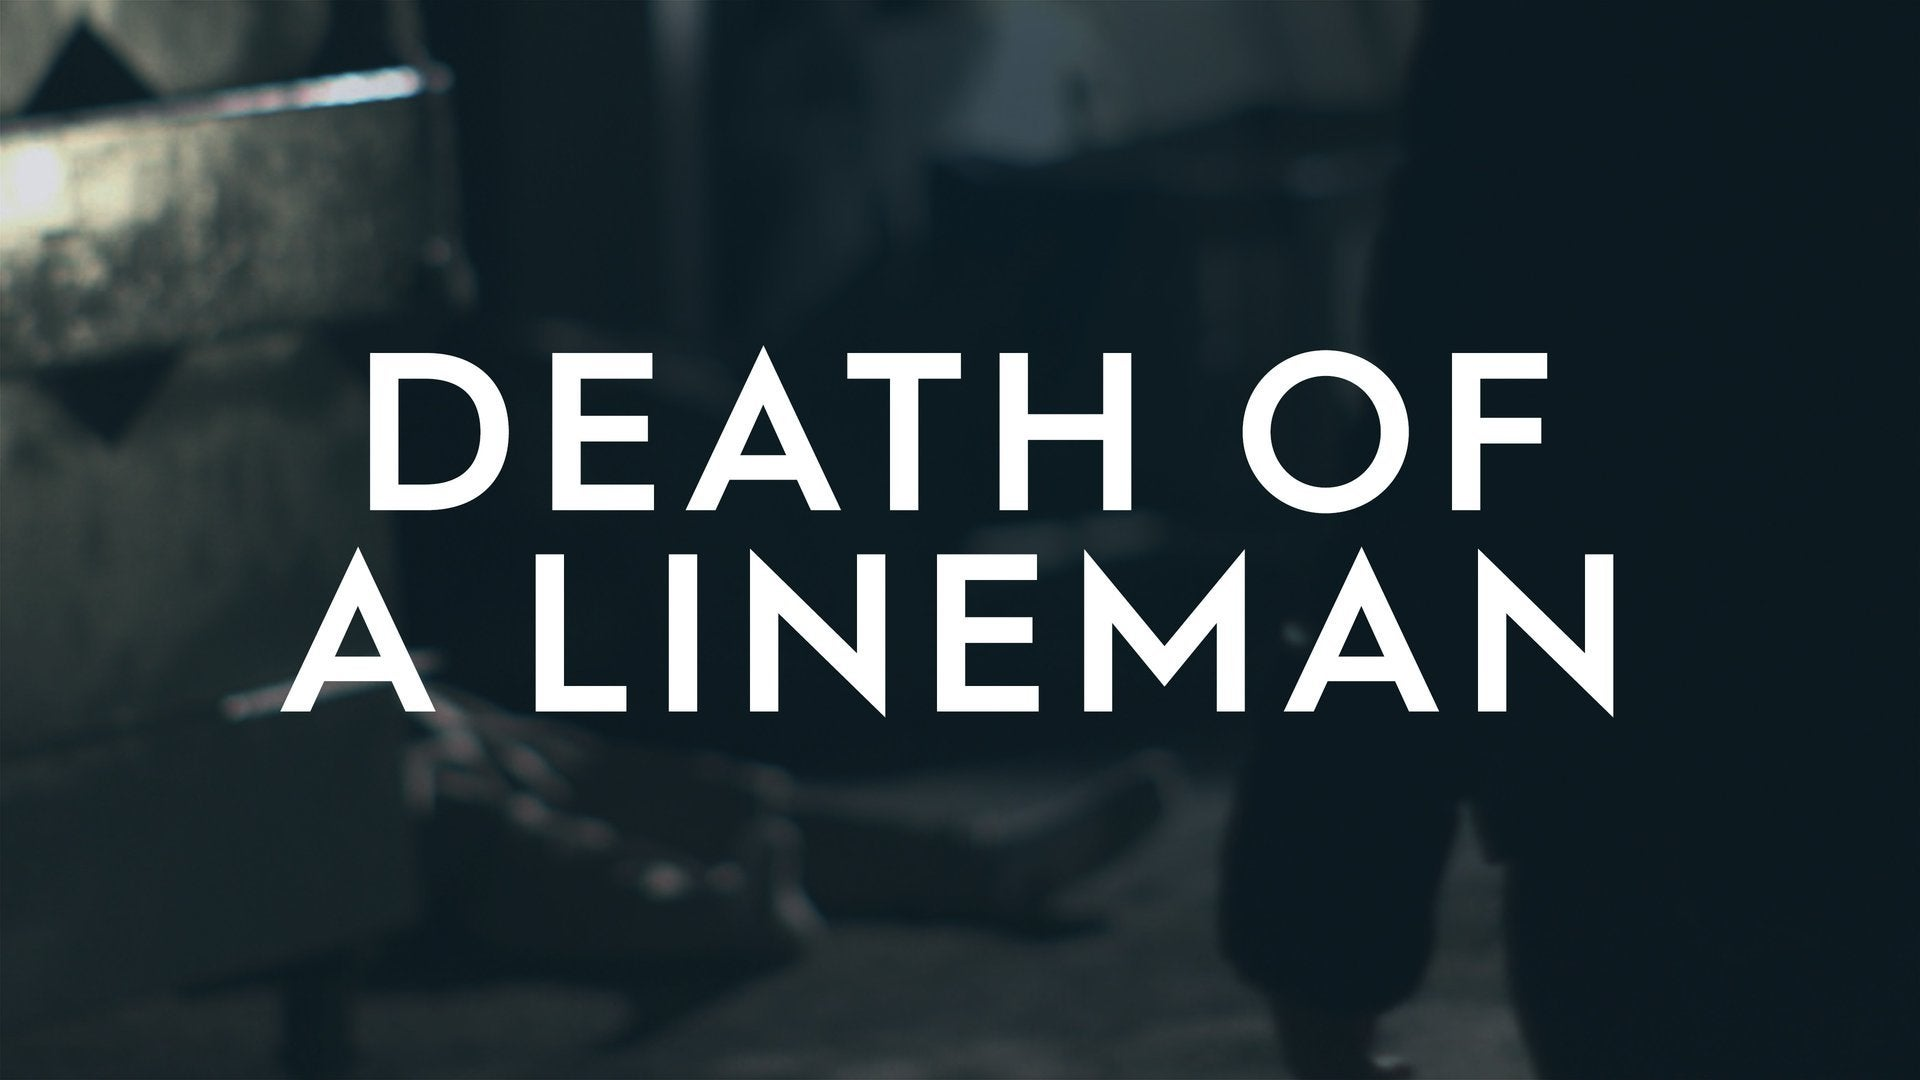 Death of a Lineman